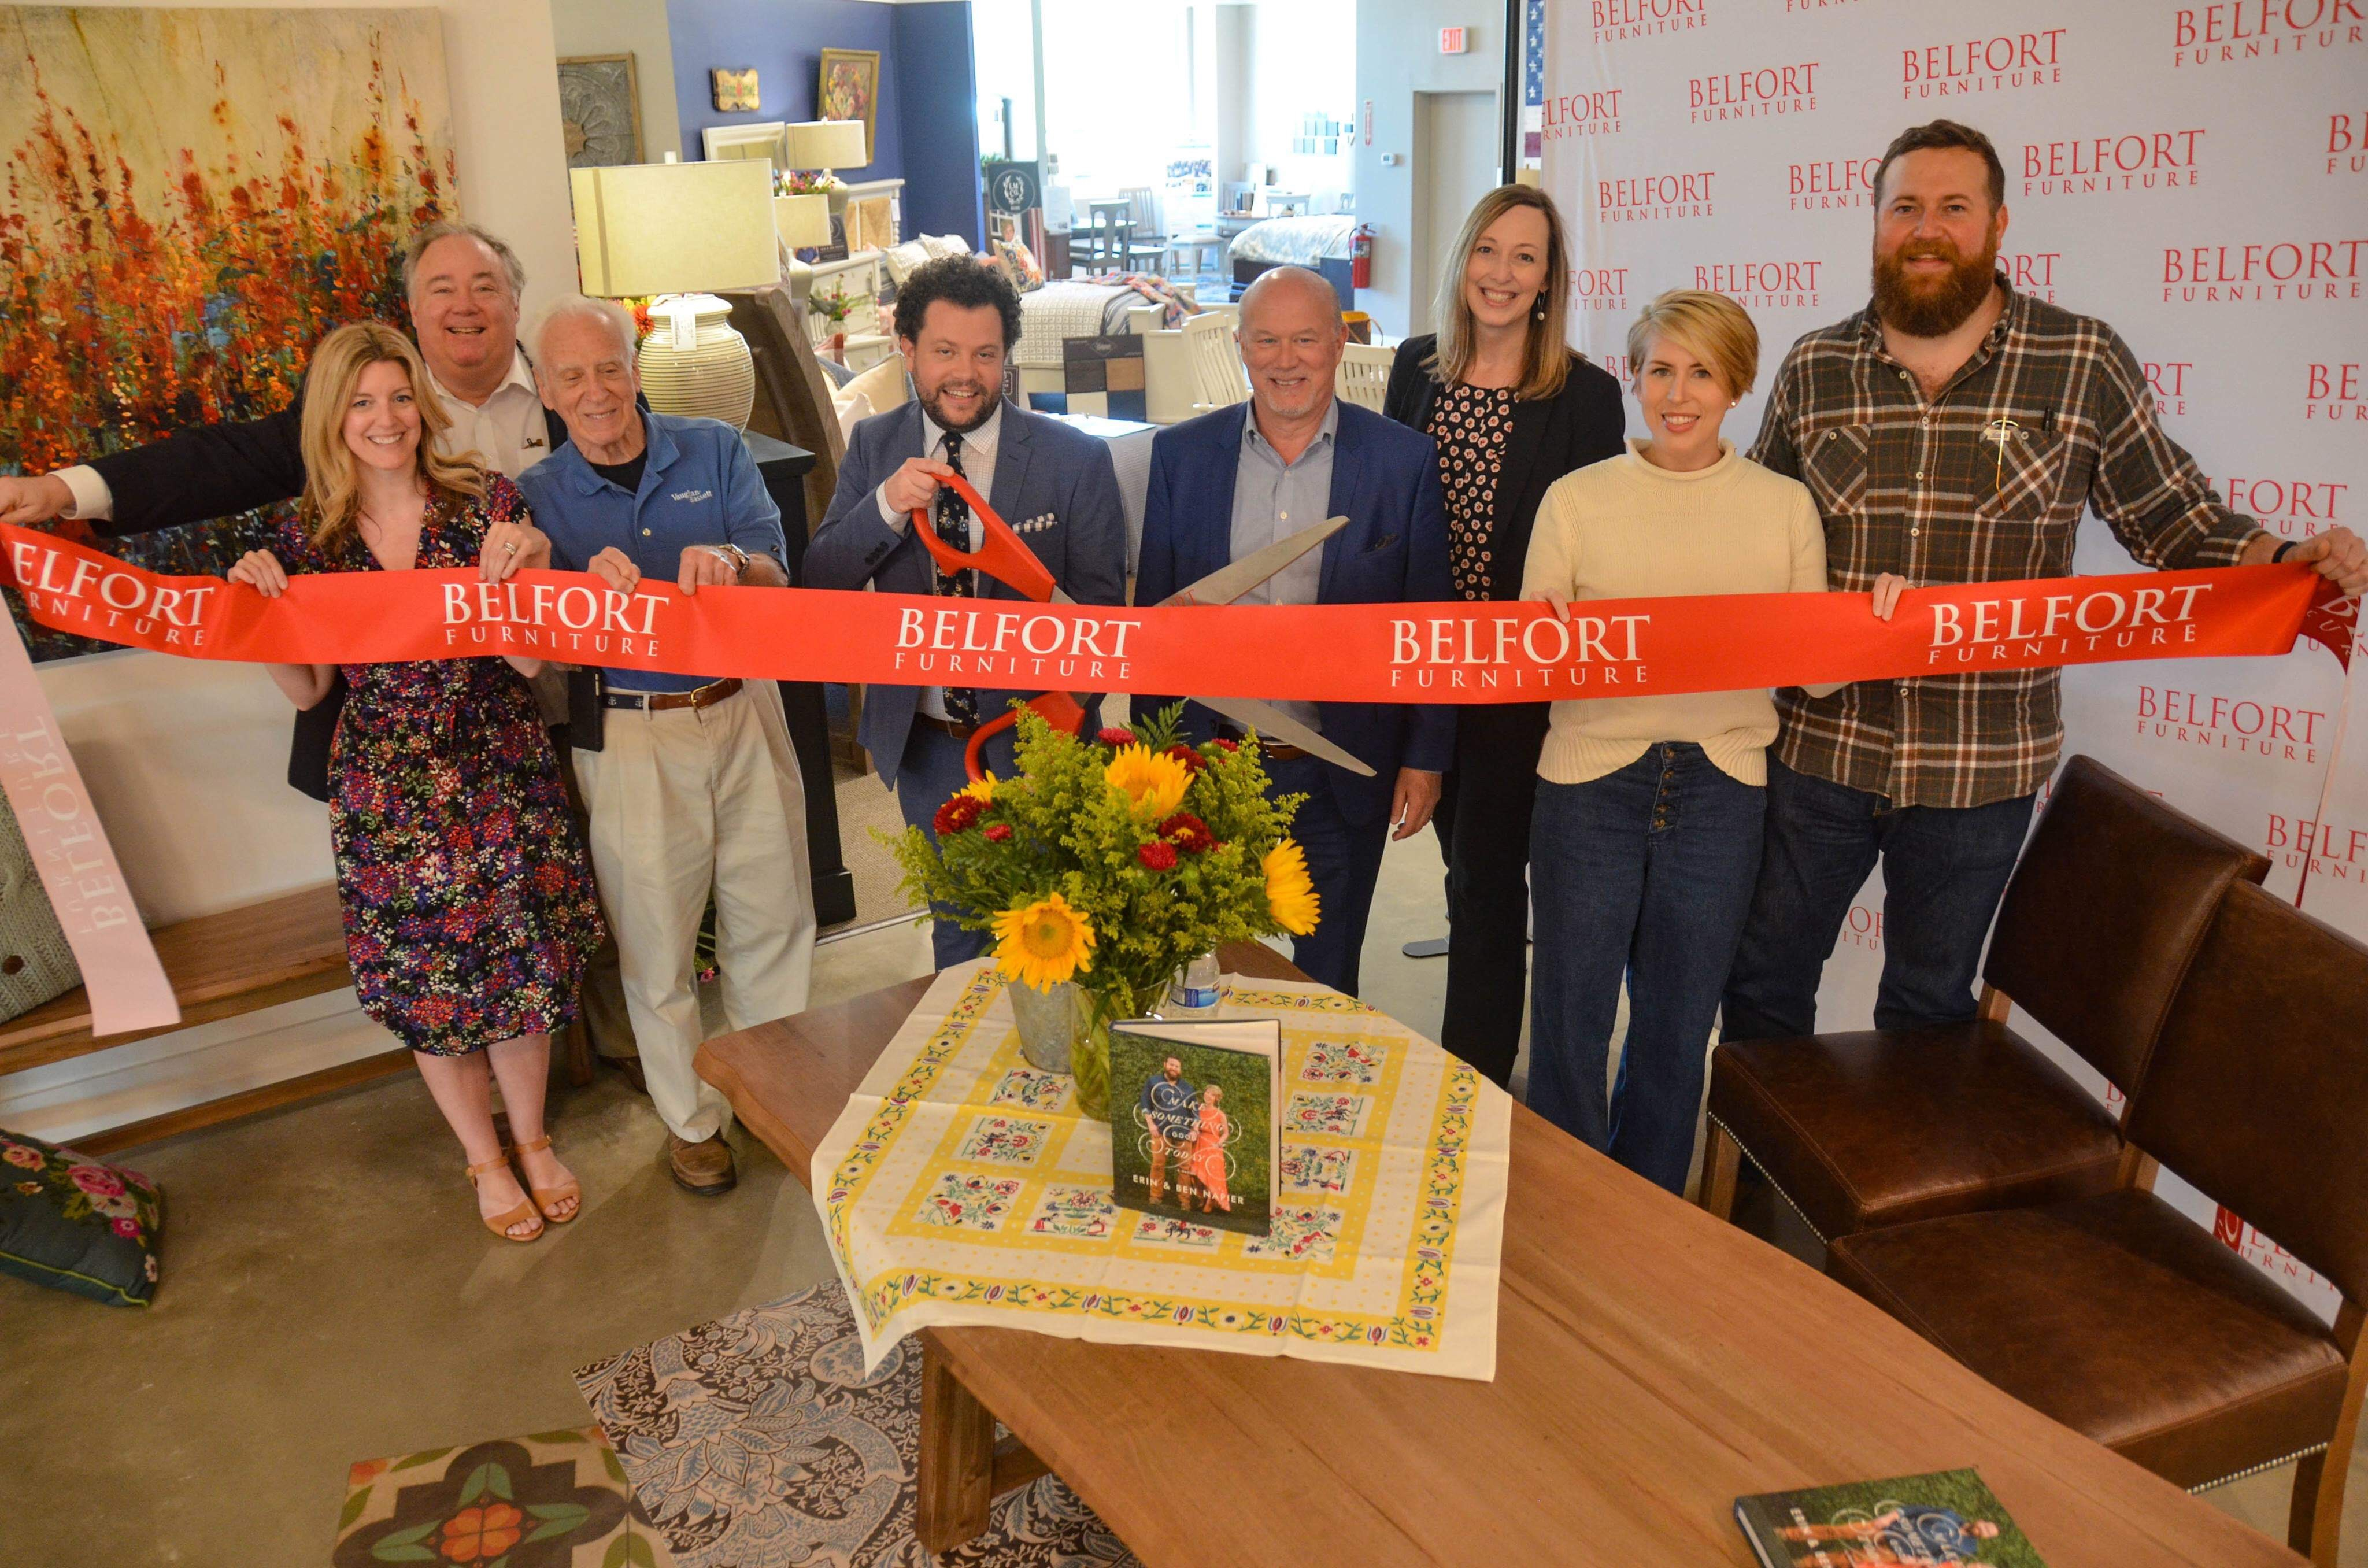 Hgtv Home Town Stars Make Appearance At Belfort Furniture